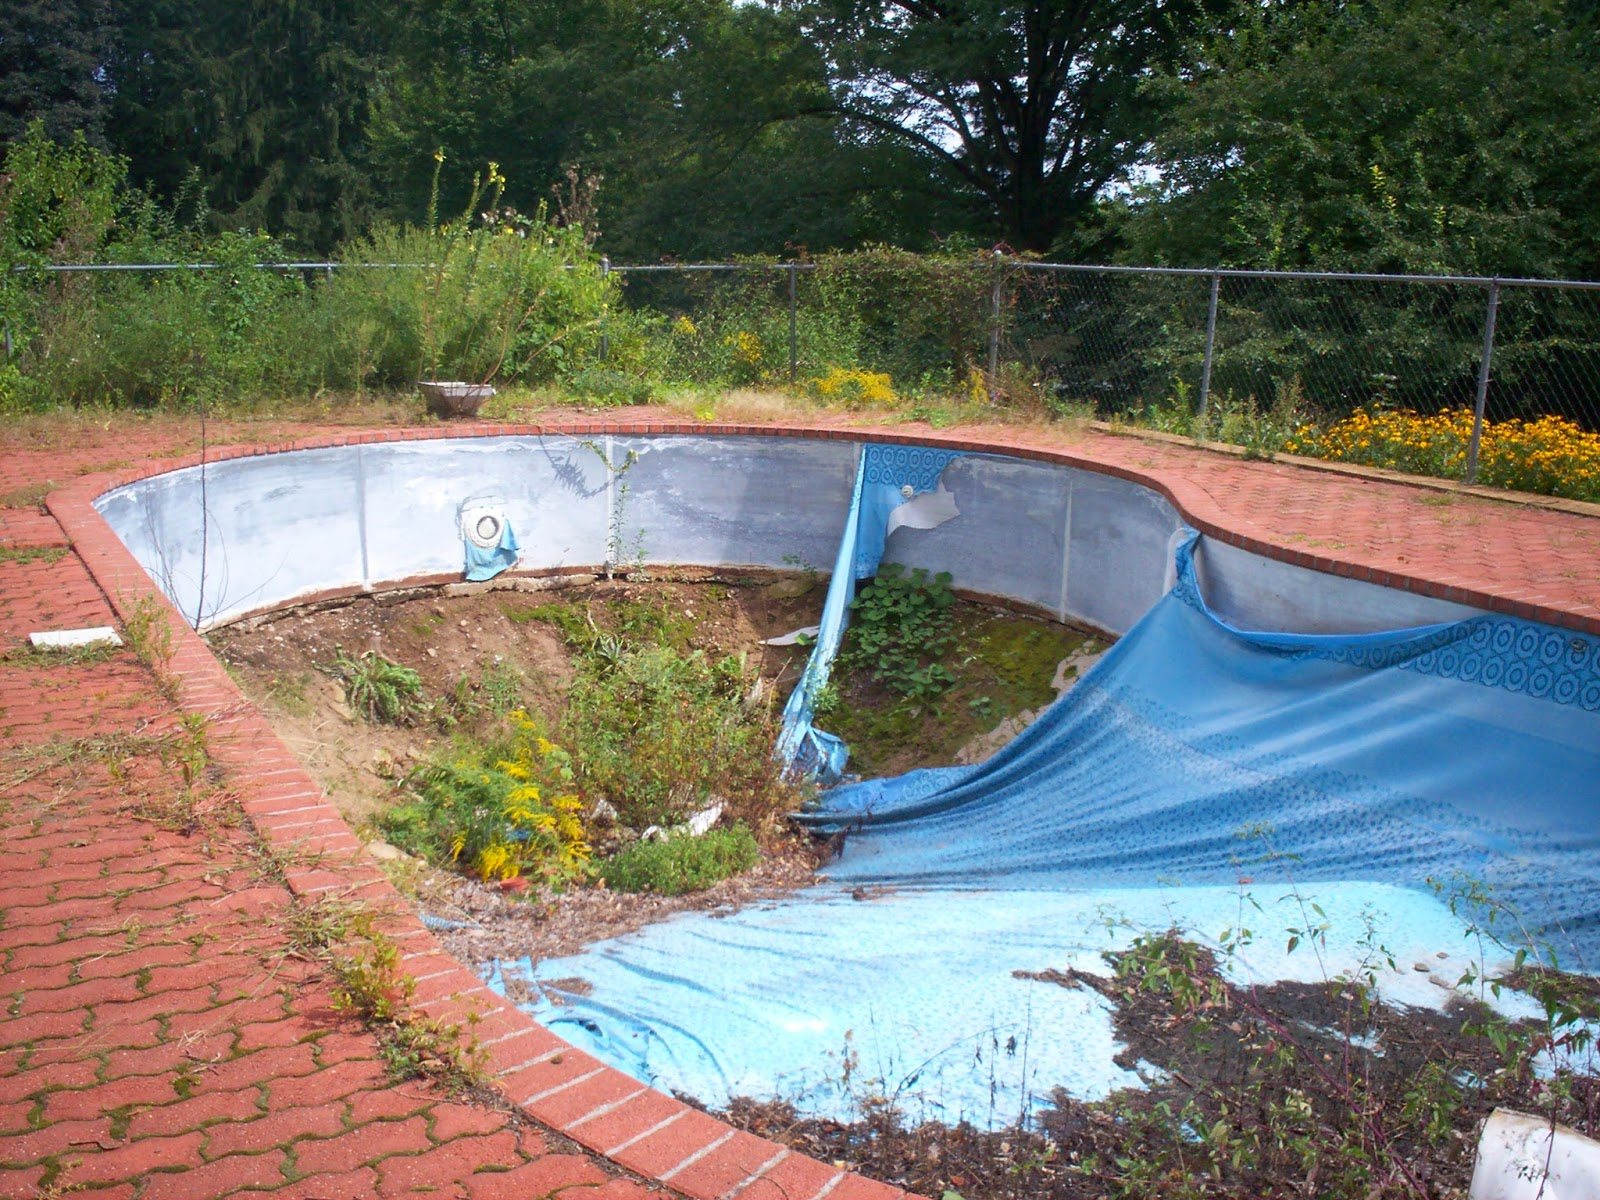 Pool Rund Gestalten Replacing A Liner How A Pool Professional Does It